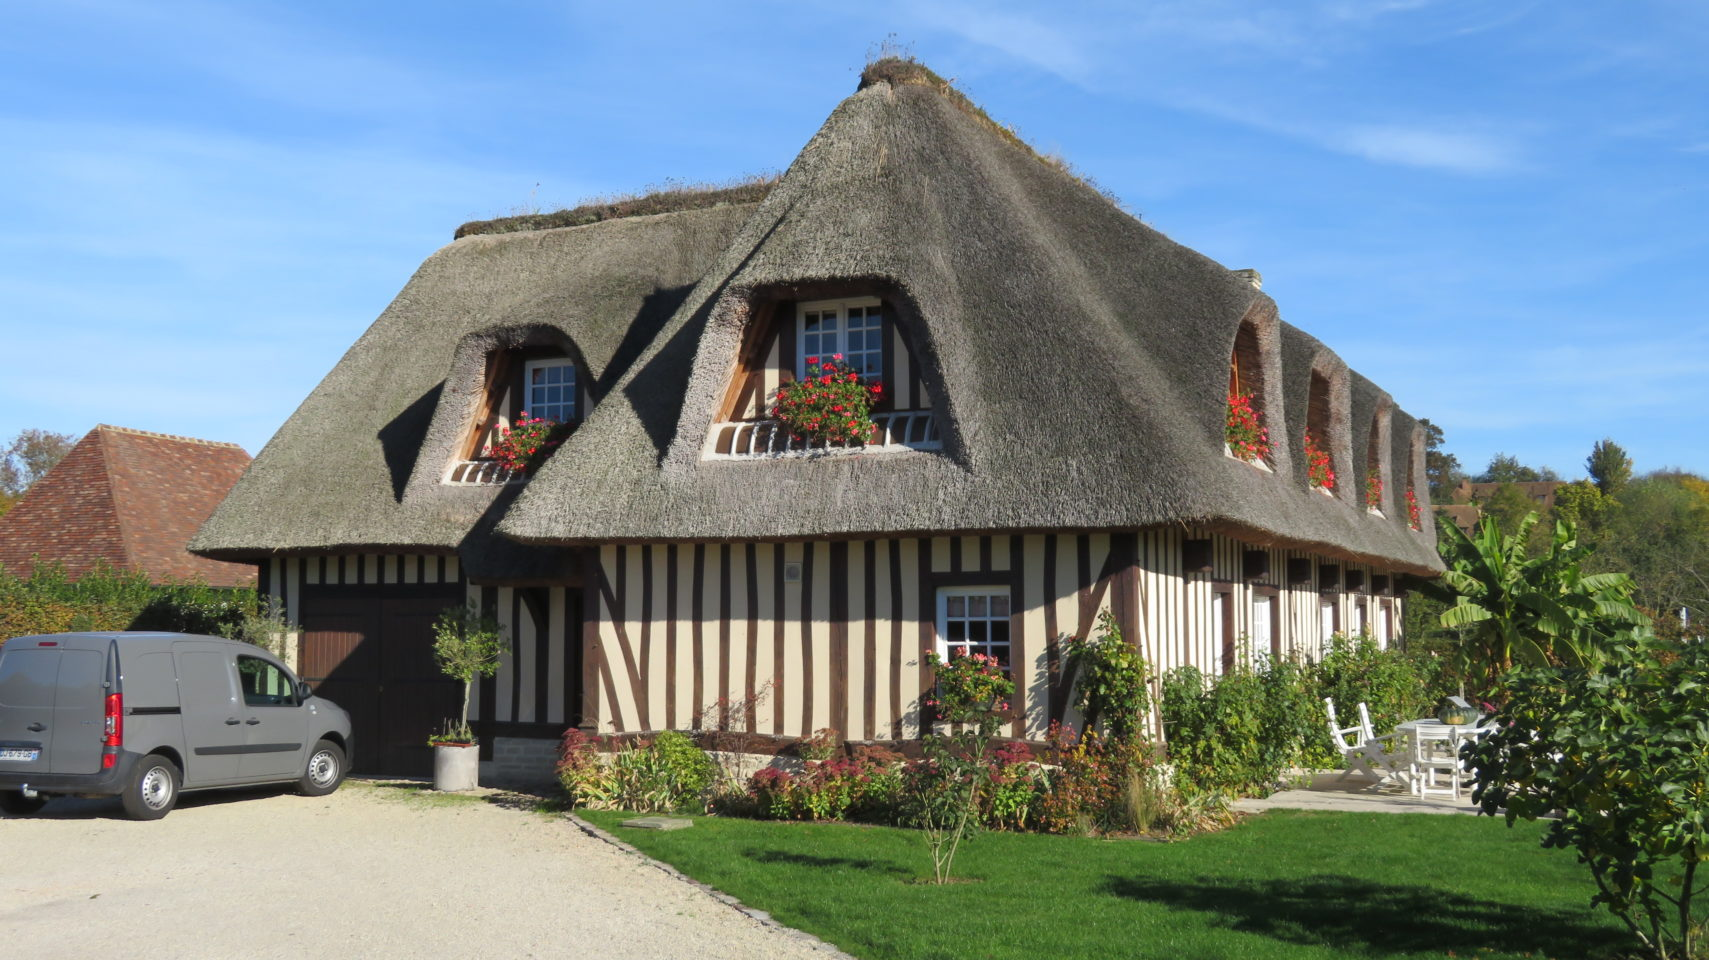 Thatched roof and half-timbered house of Normandie (Paris and Normandie AMAWaterways Cruise)